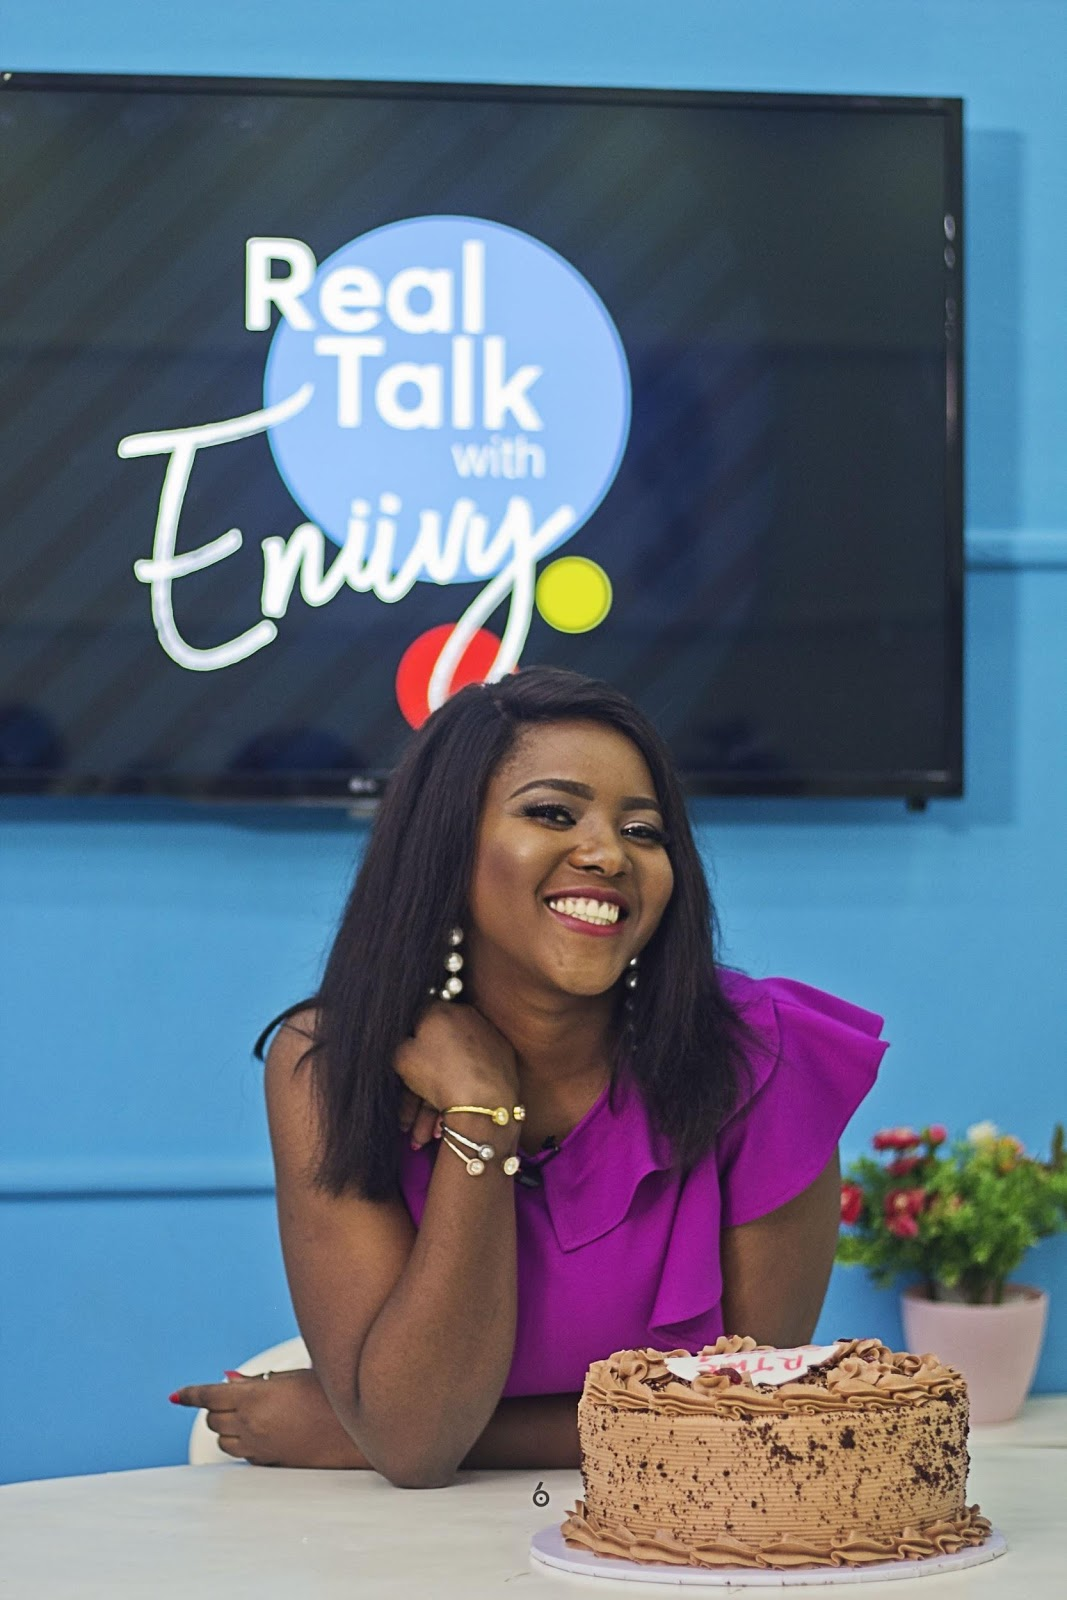 TV Show 'Real Talk With Eniivy' Wraps Up First Season With Chef Battle